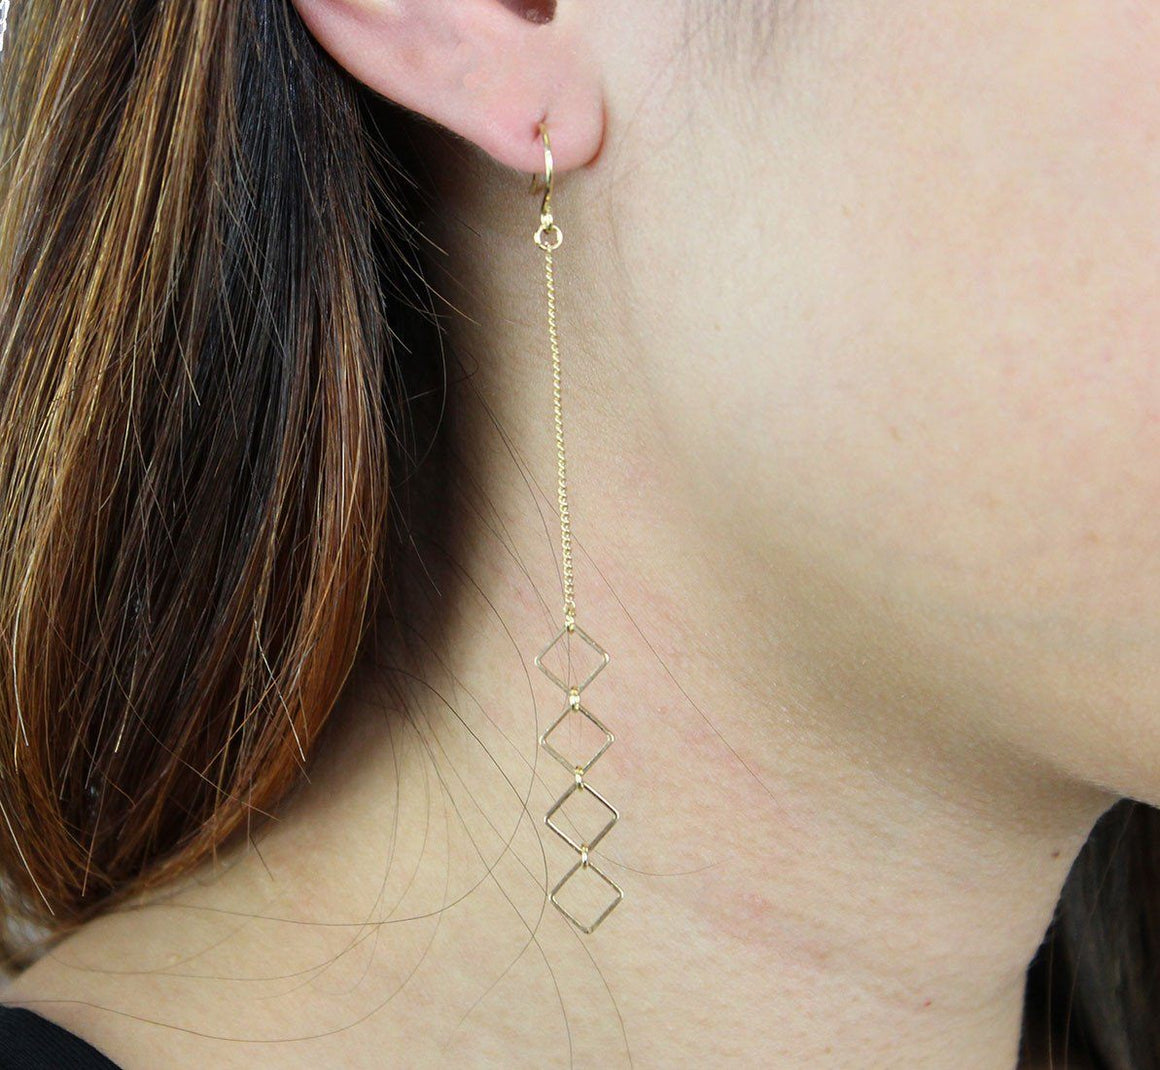 Trudy Earring in Gold-Earrings-Niobe Clothing